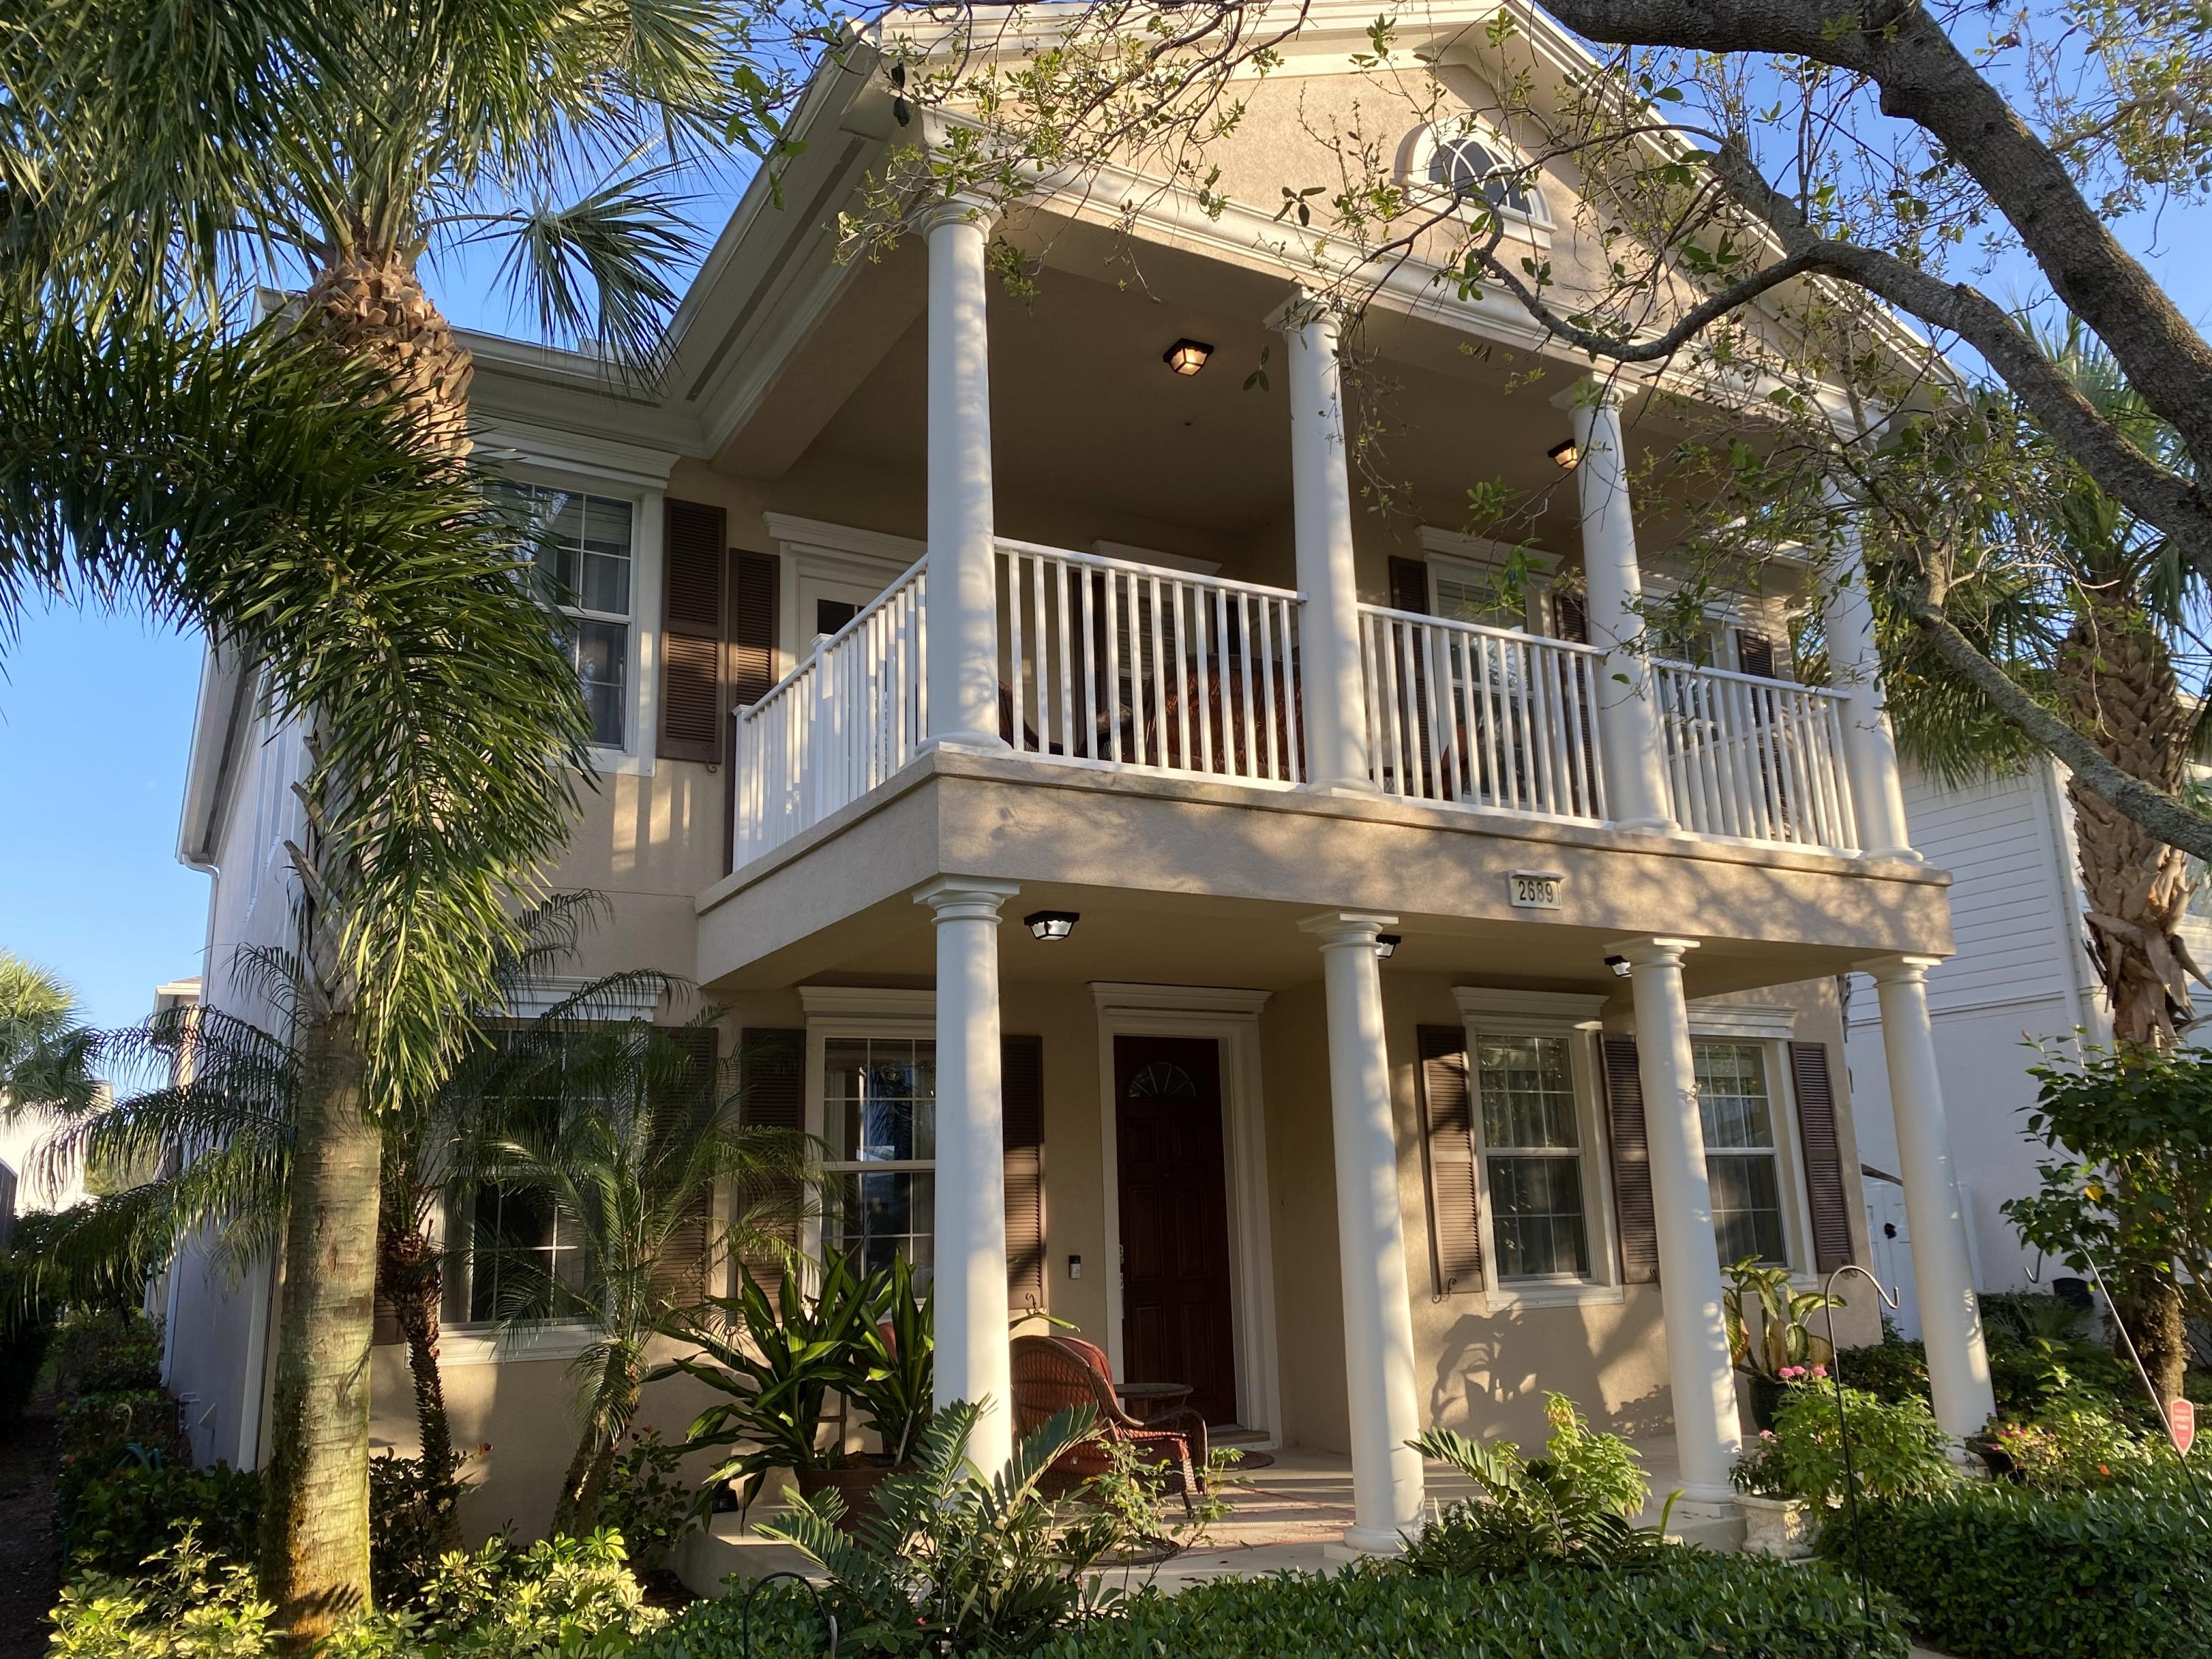 New Home for sale at 2689 Community Drive in Jupiter